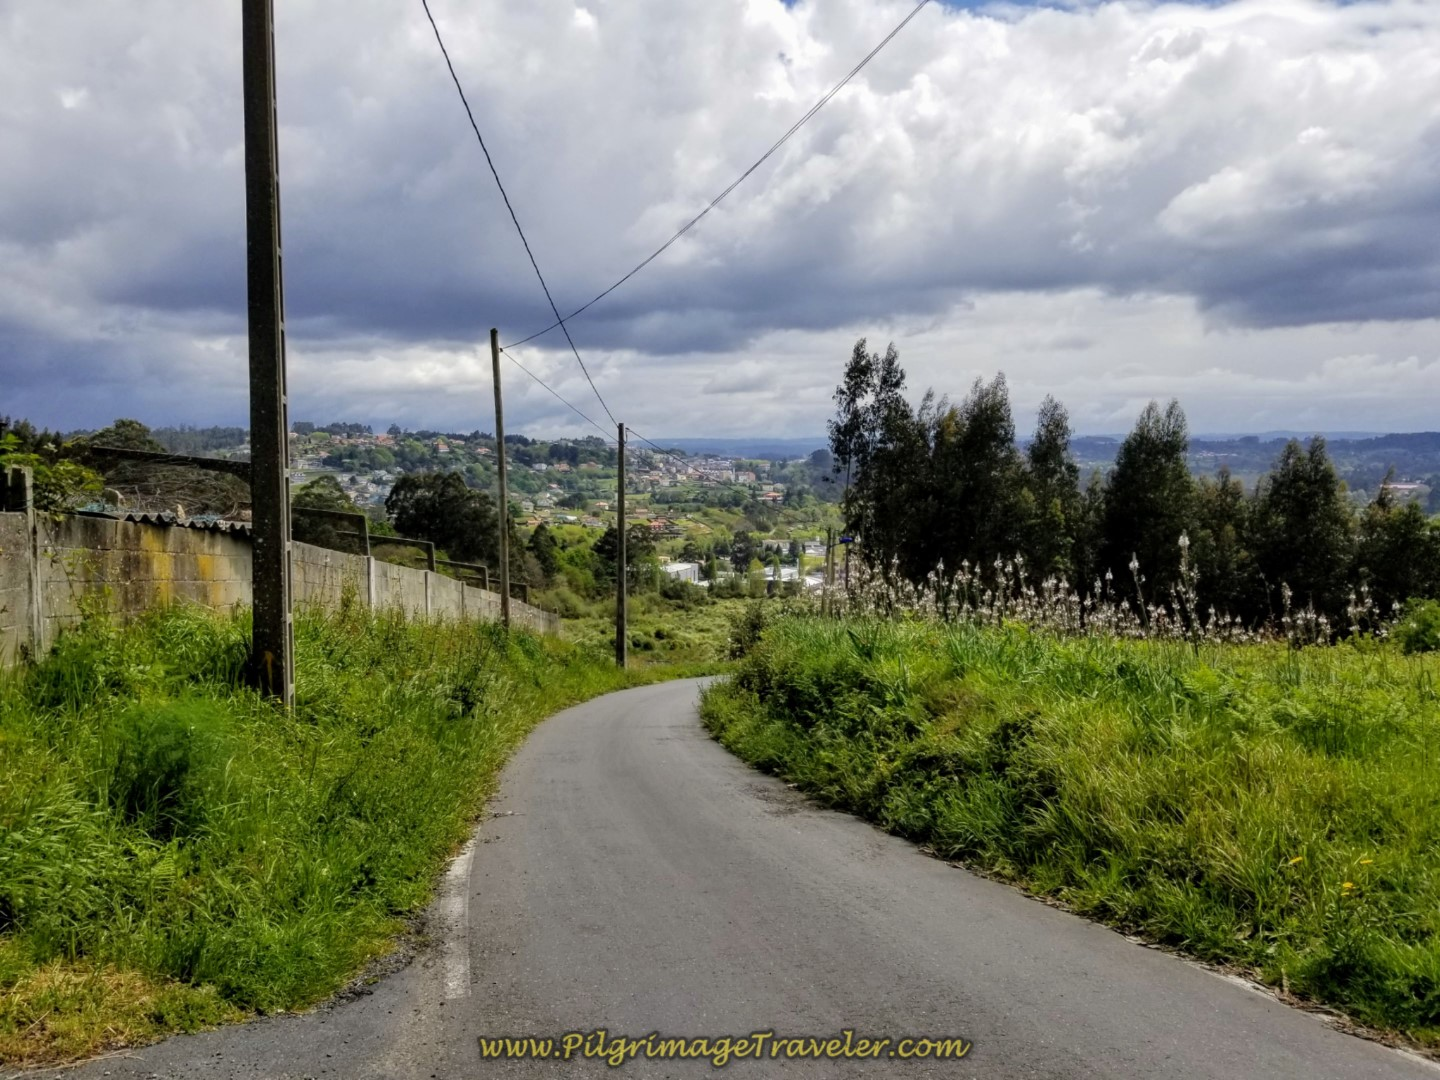 Continue Downhill on Rural Road on day one of the La Coruña Arm of the Camino Inglés